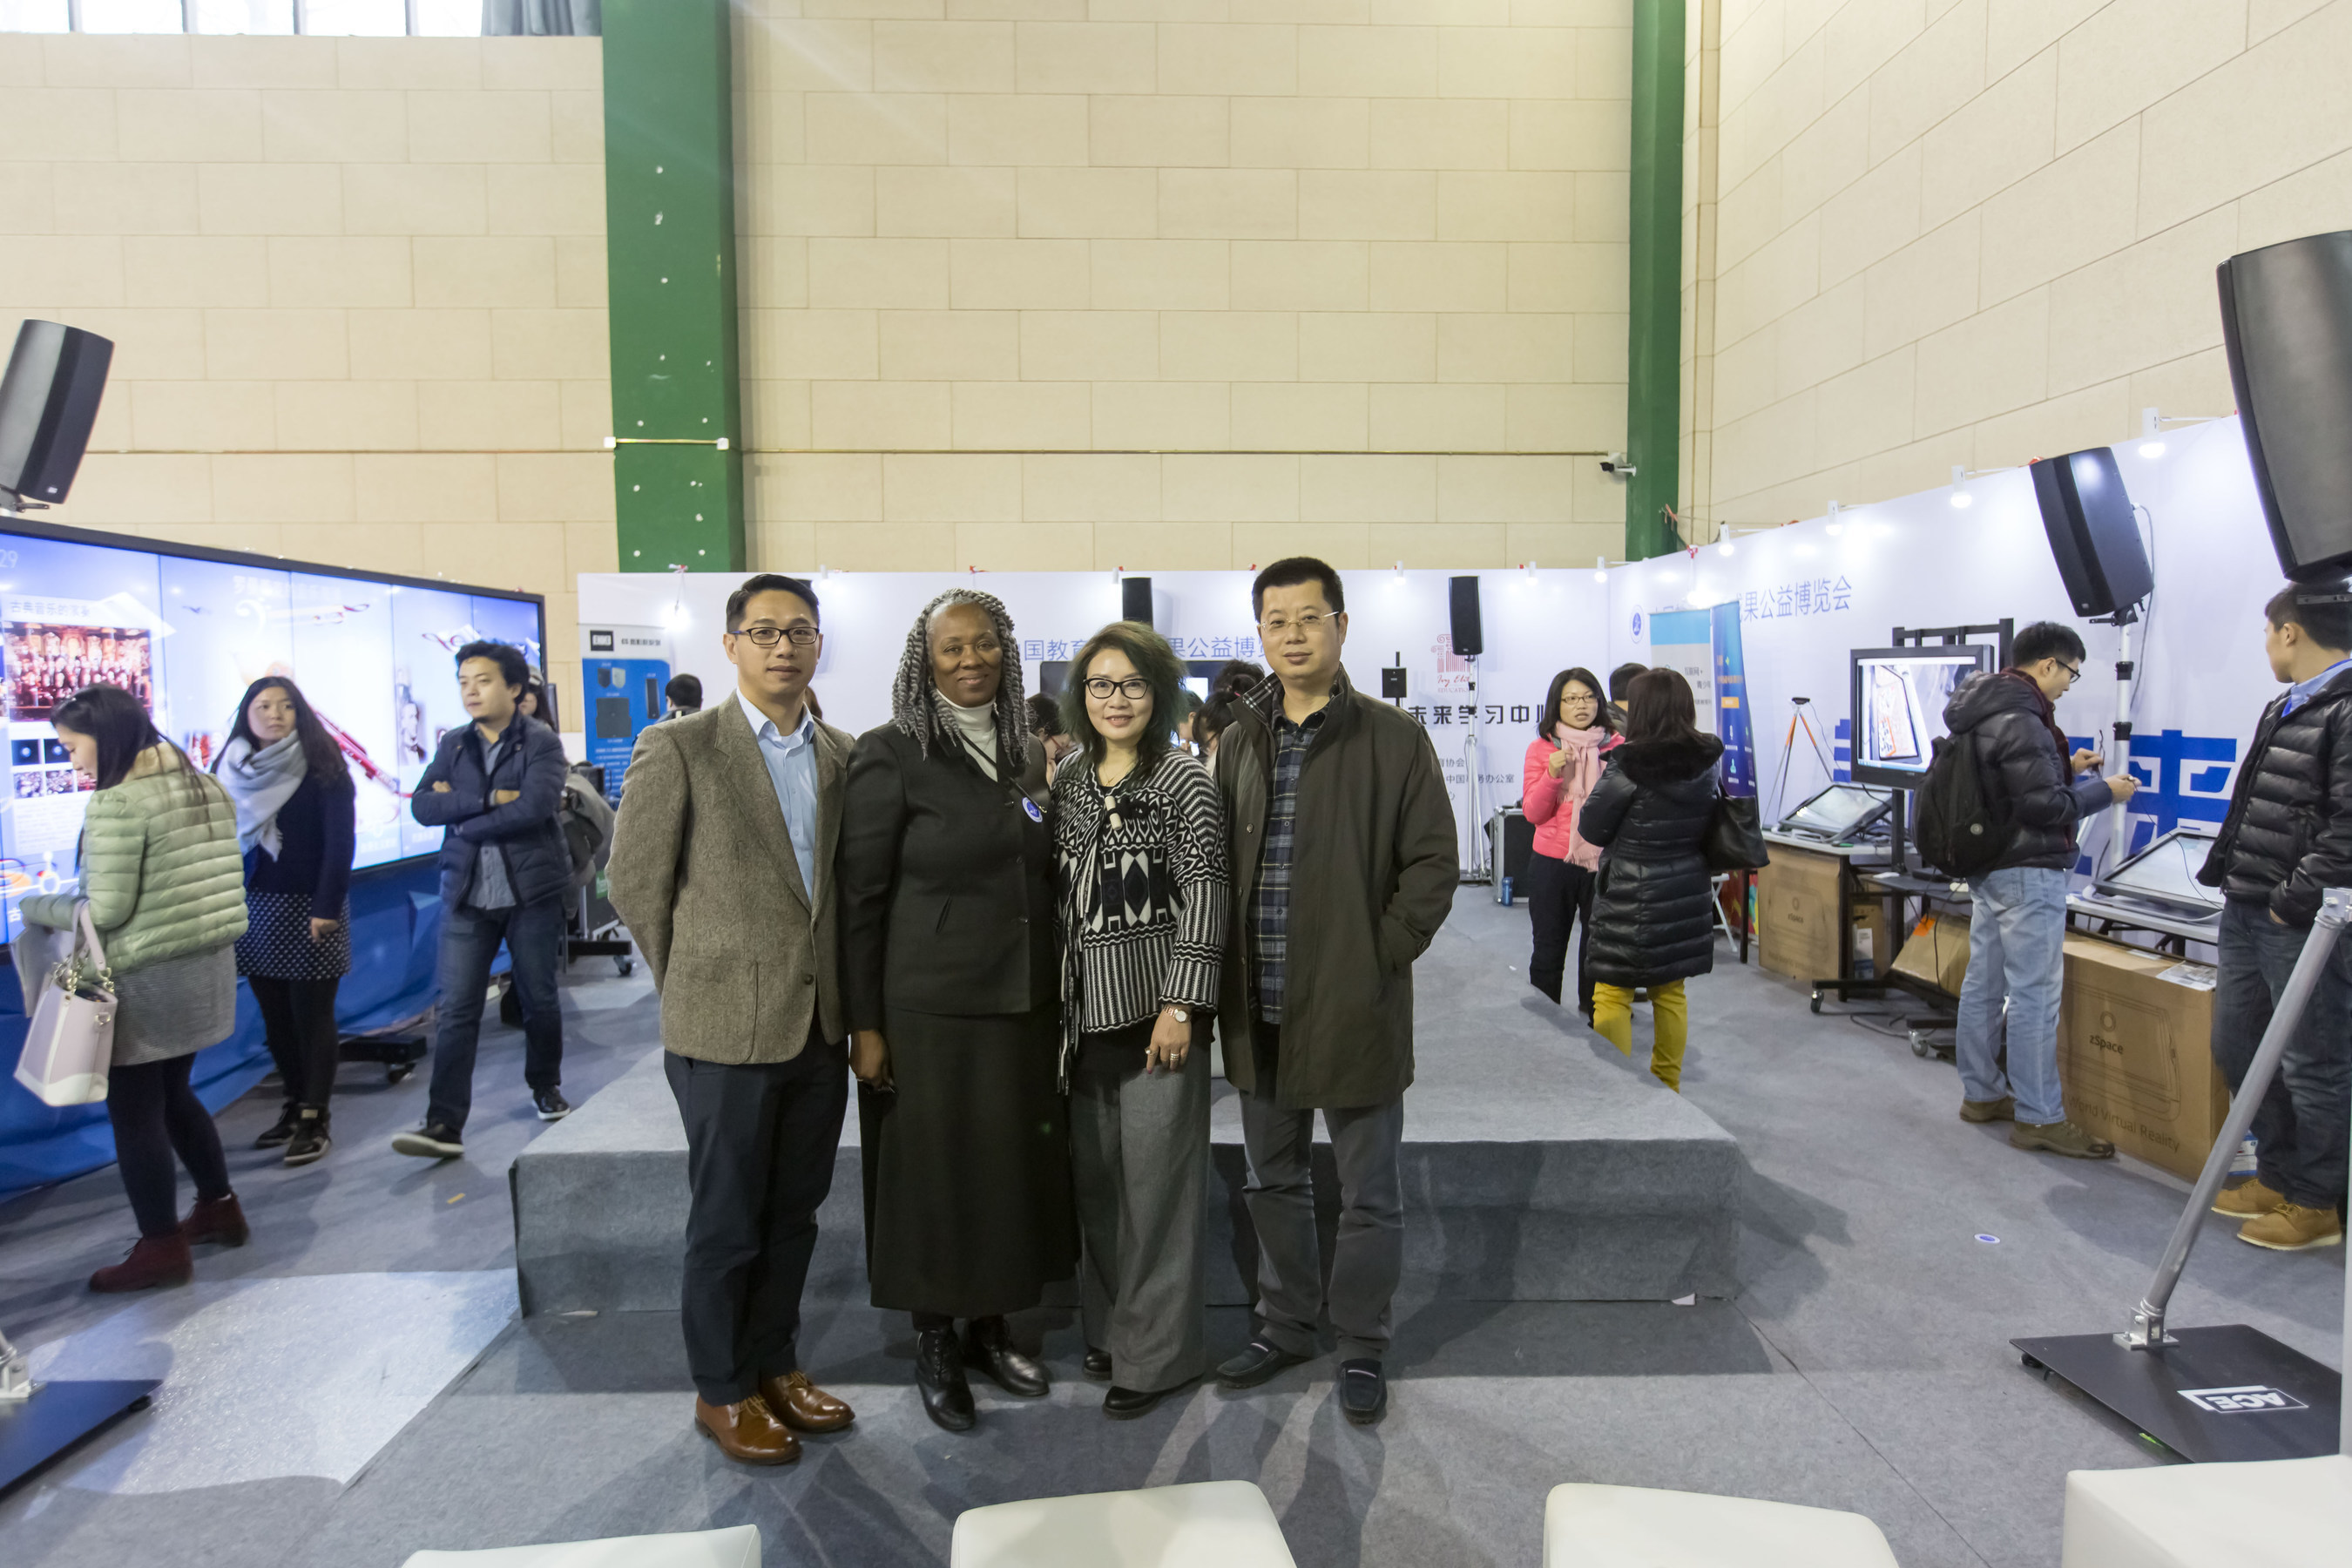 Group Photo Taken at the Ivy Elite Apple Future Learning Center of the First China Education Innovation Expo ...